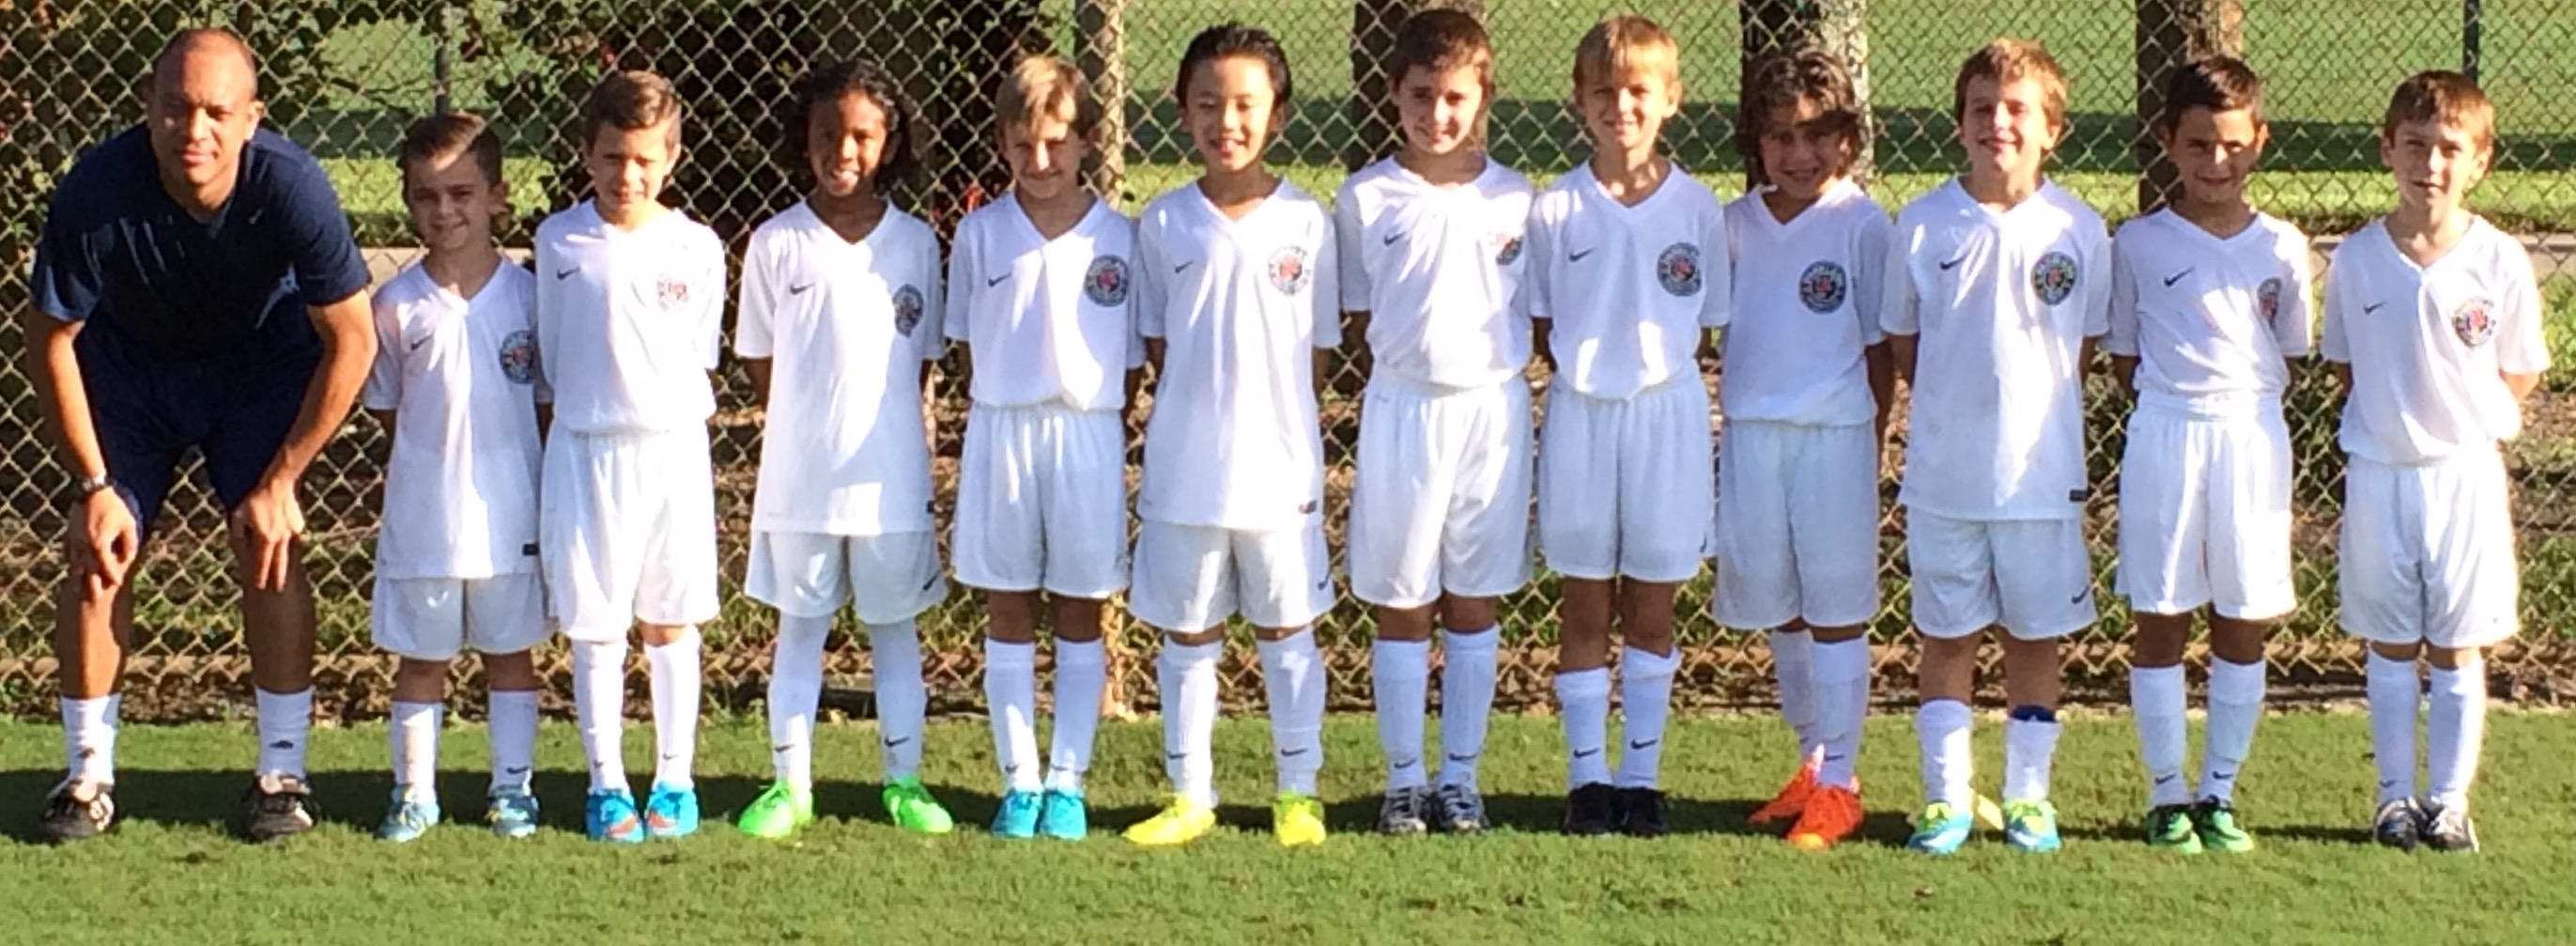 U9 Boys White Team